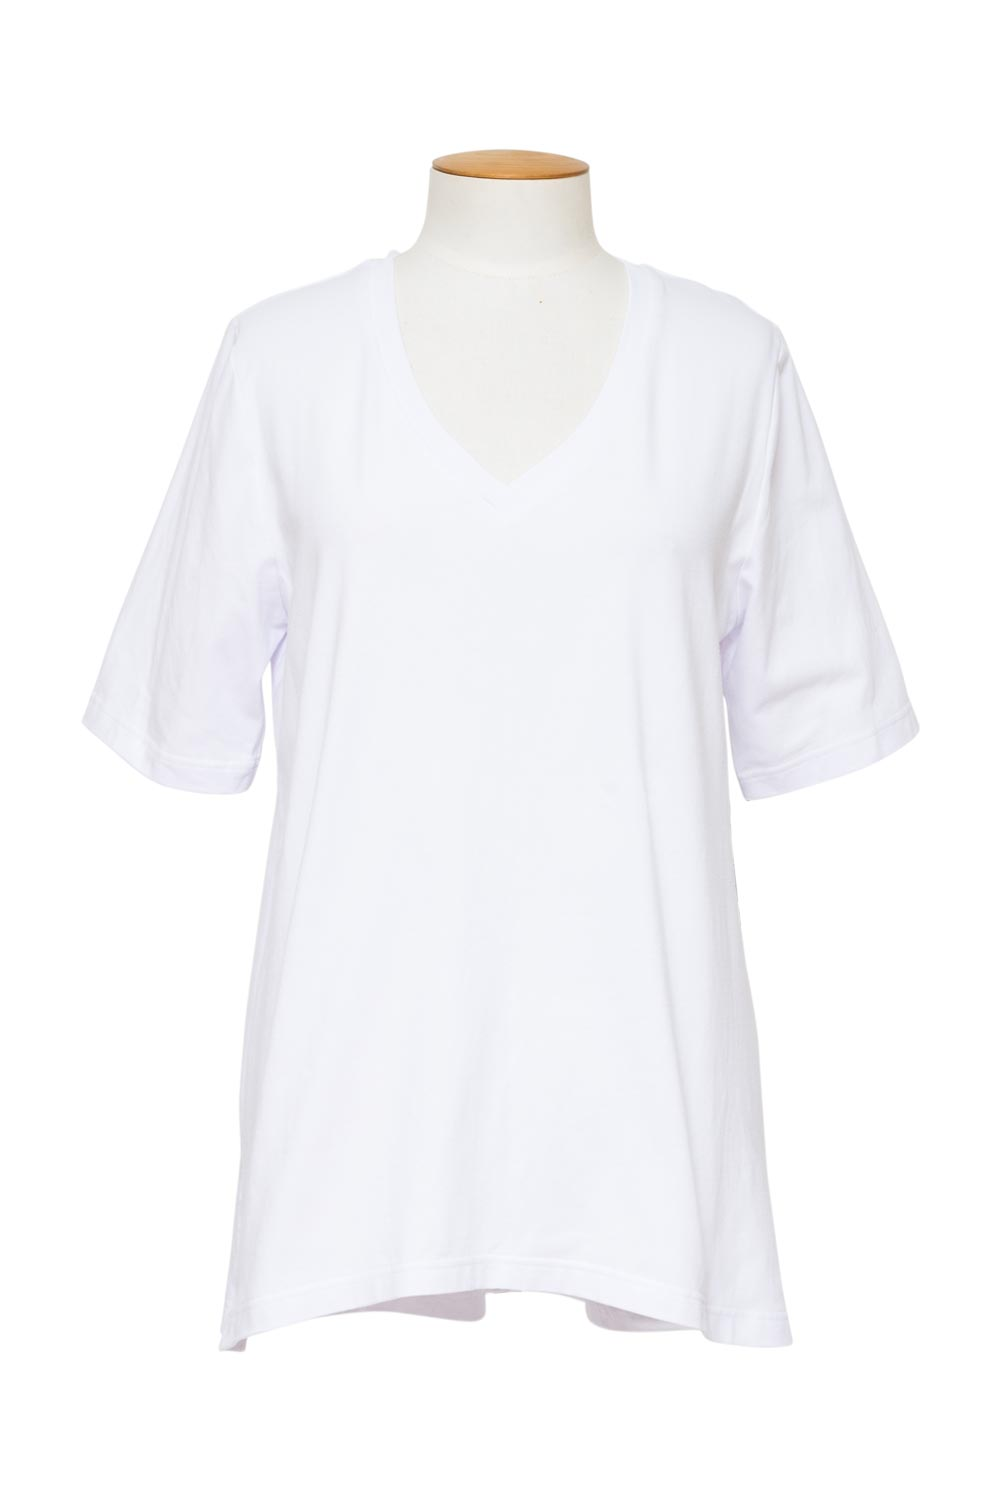 cashews-long-v-shirt-white